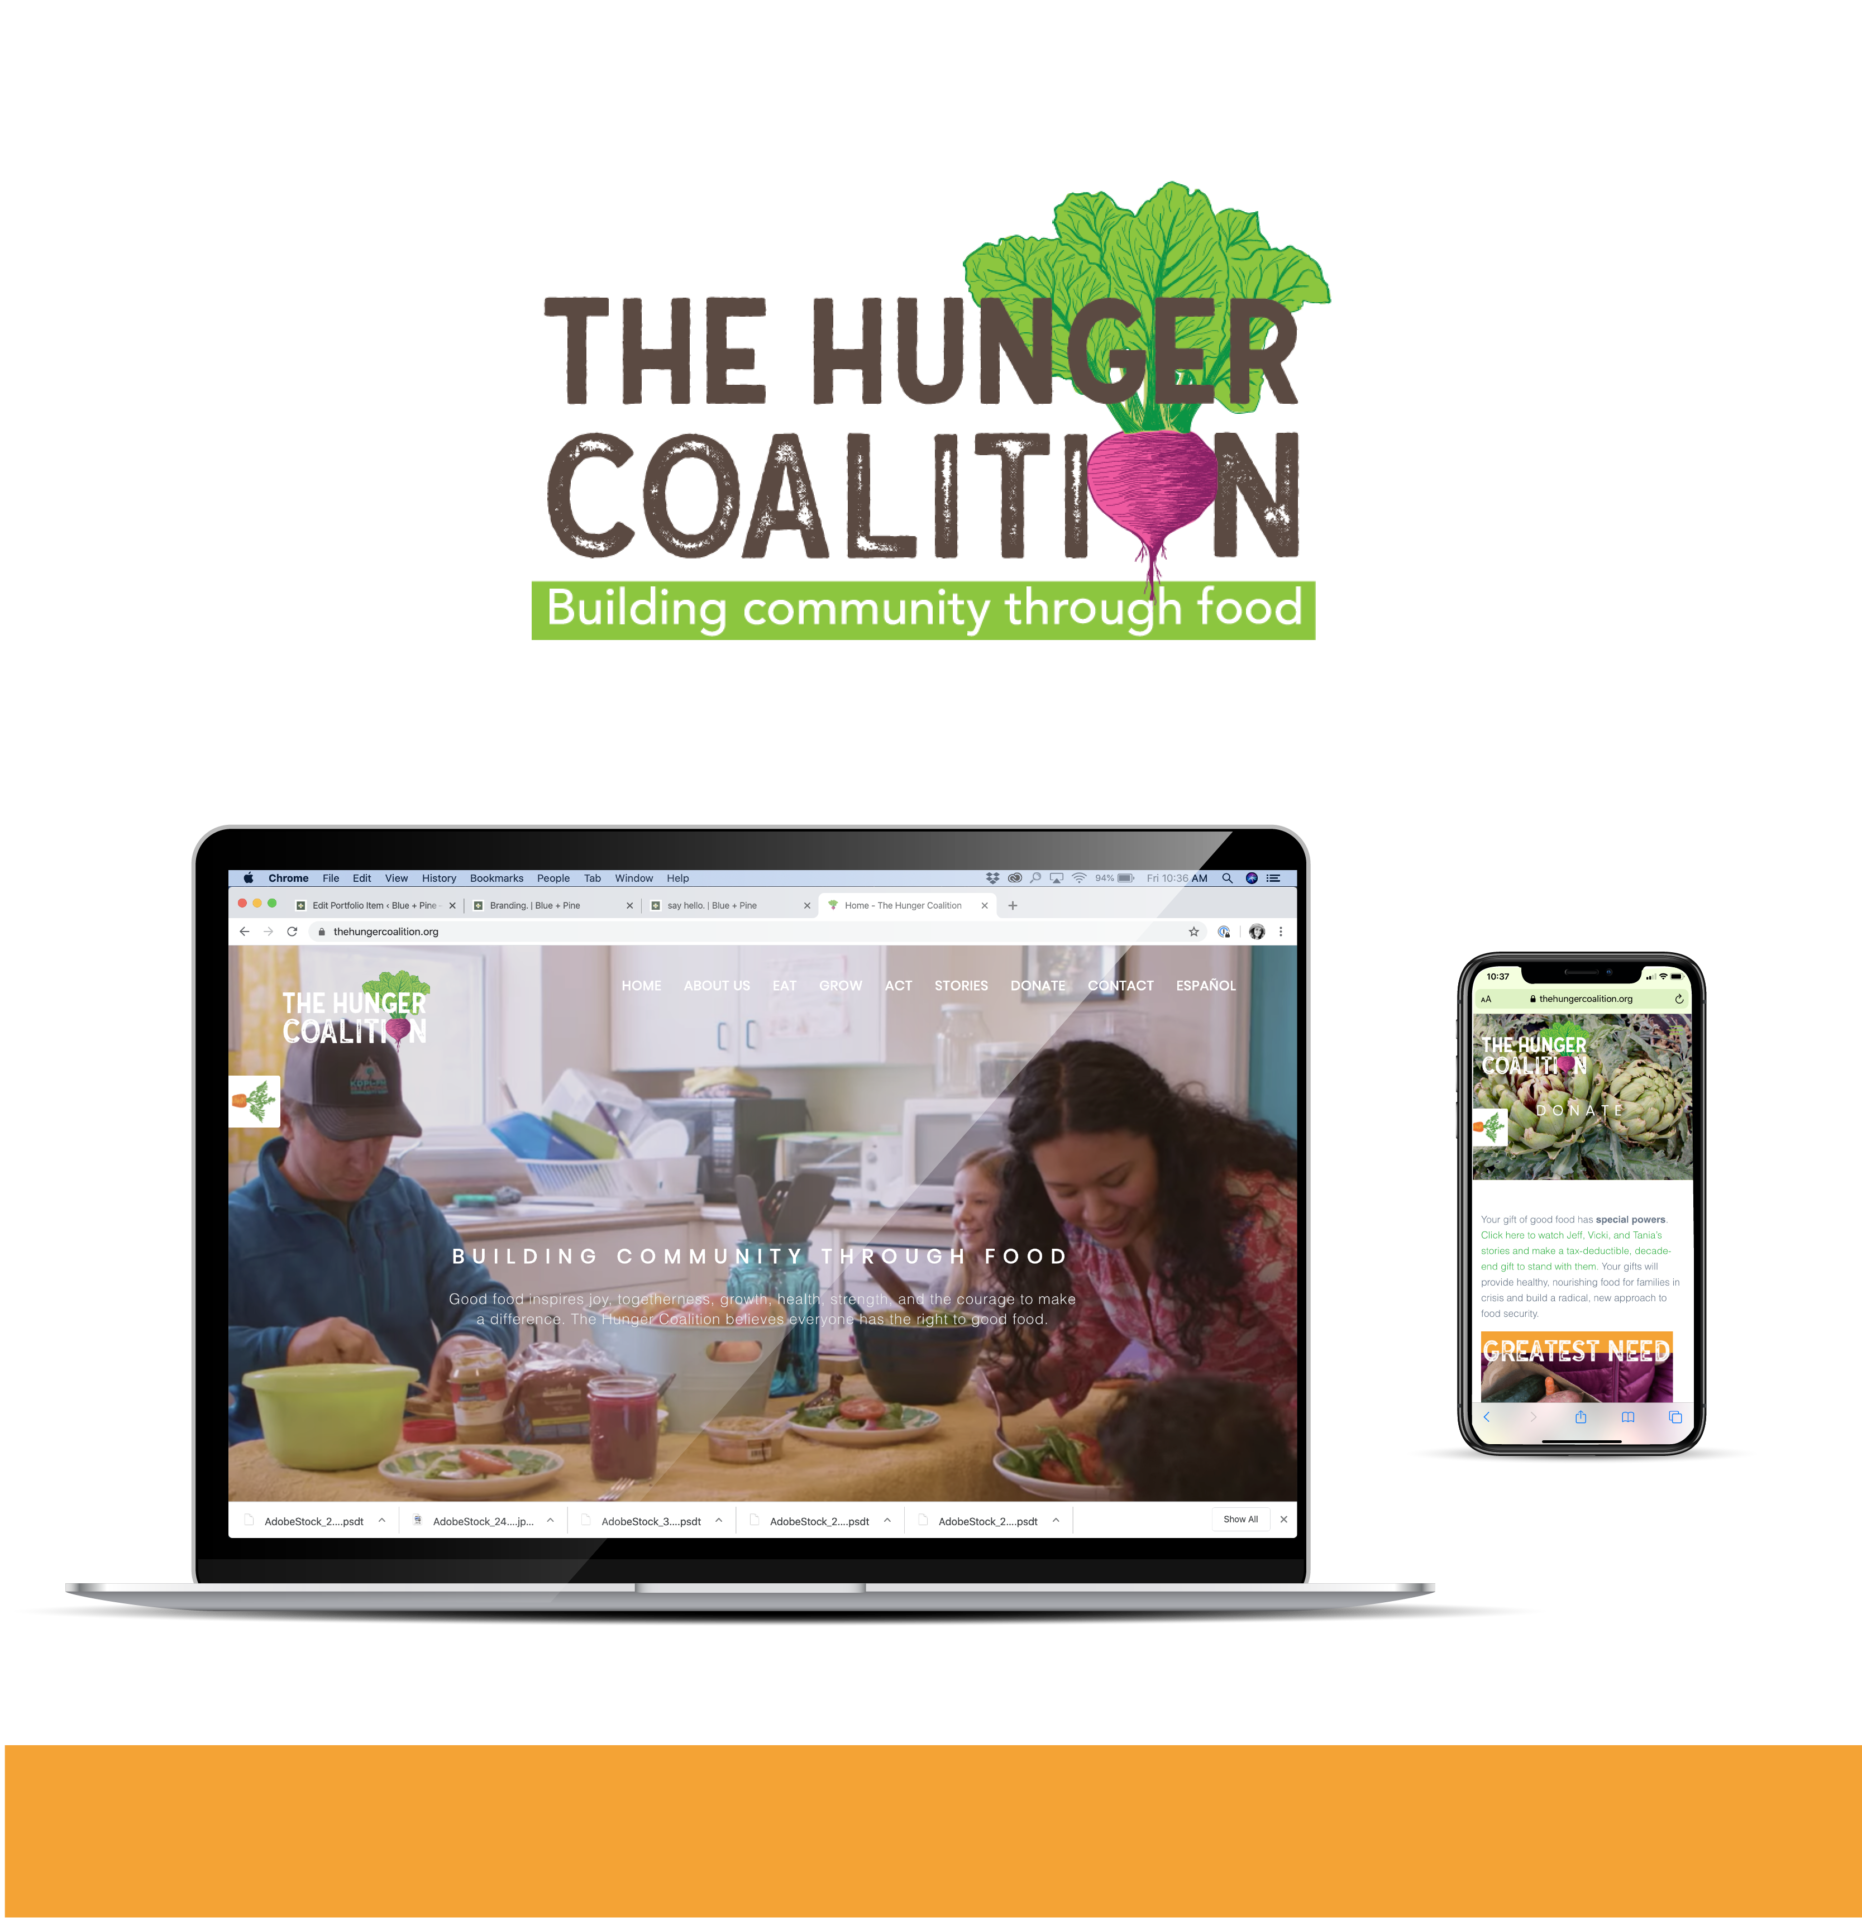 Portfolio | Website Design for The Hunger Coalition featuring the logo and website design on a laptop and iPhone